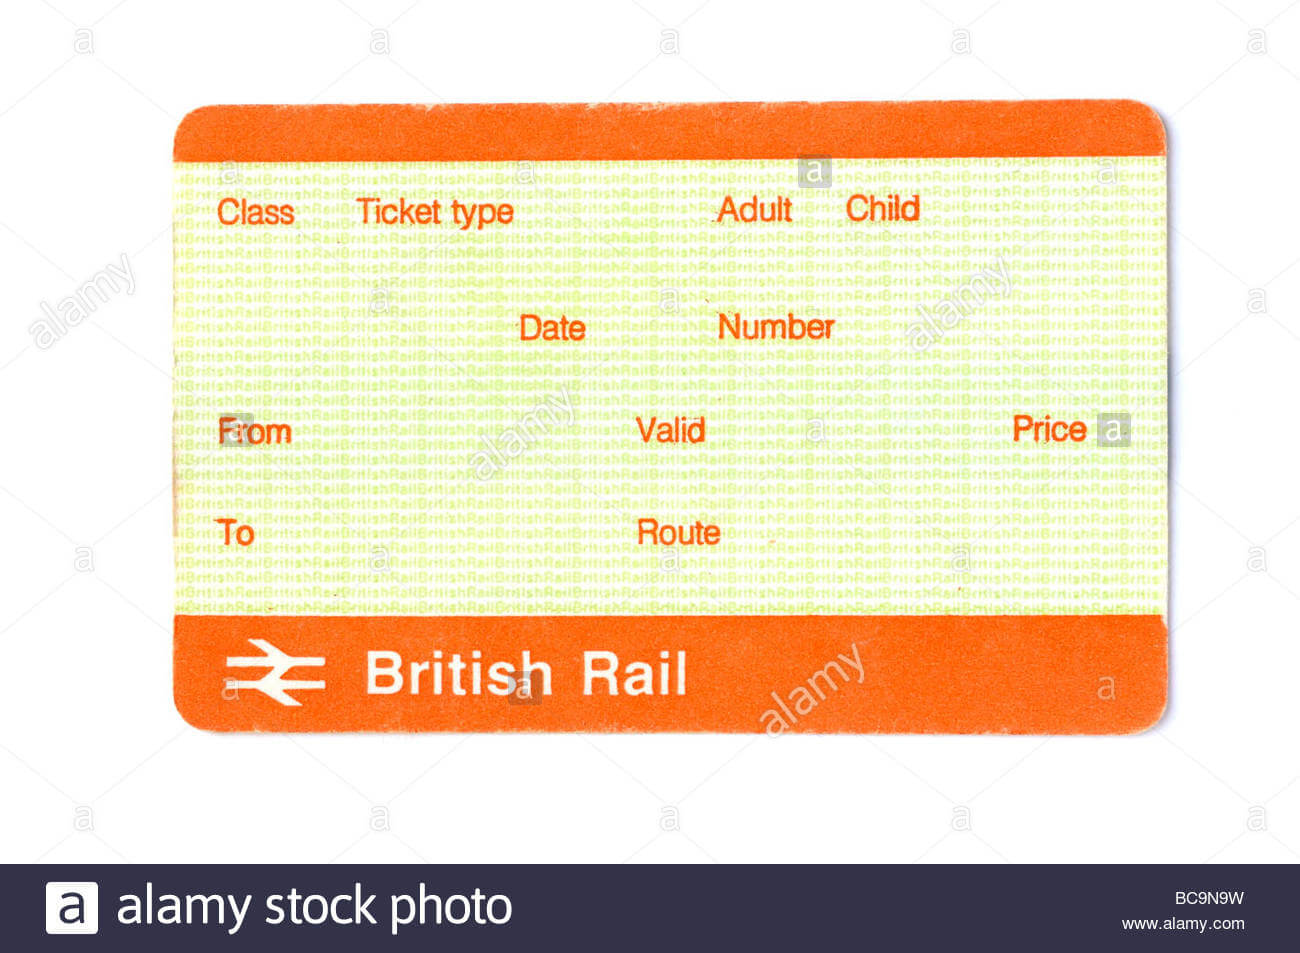 Train Ticket Blank Stock Photos & Train Ticket Blank Stock Intended For Blank Train Ticket Template